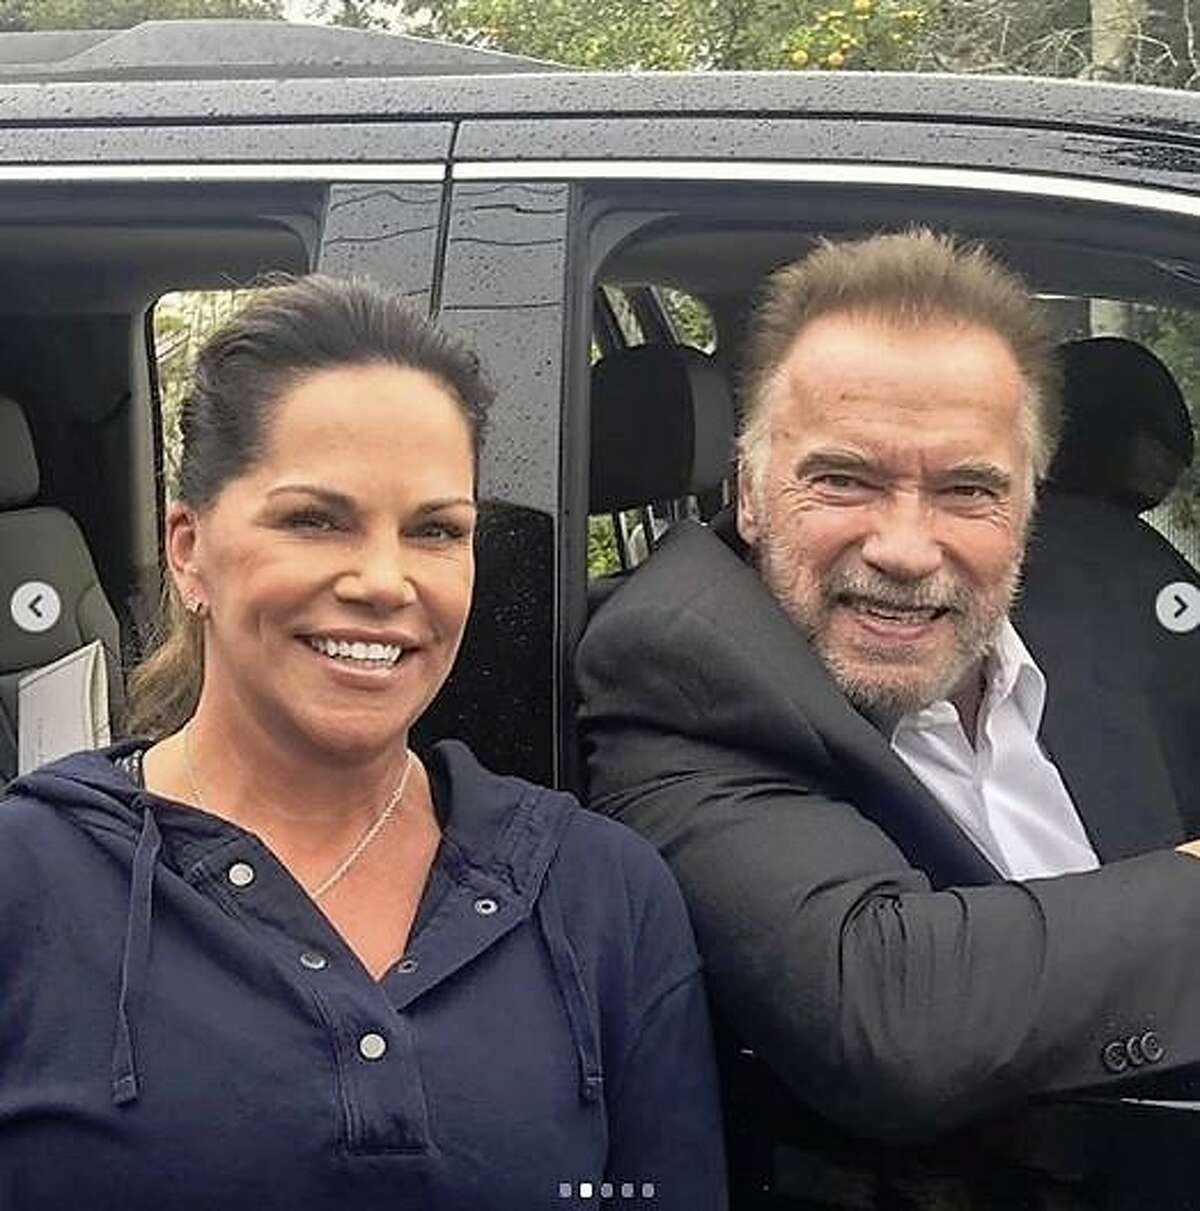 Arriving at around 12:30 p.m., 71-year-old Schwarzenegger and his group, who were at the restaurant for approximately an hour.